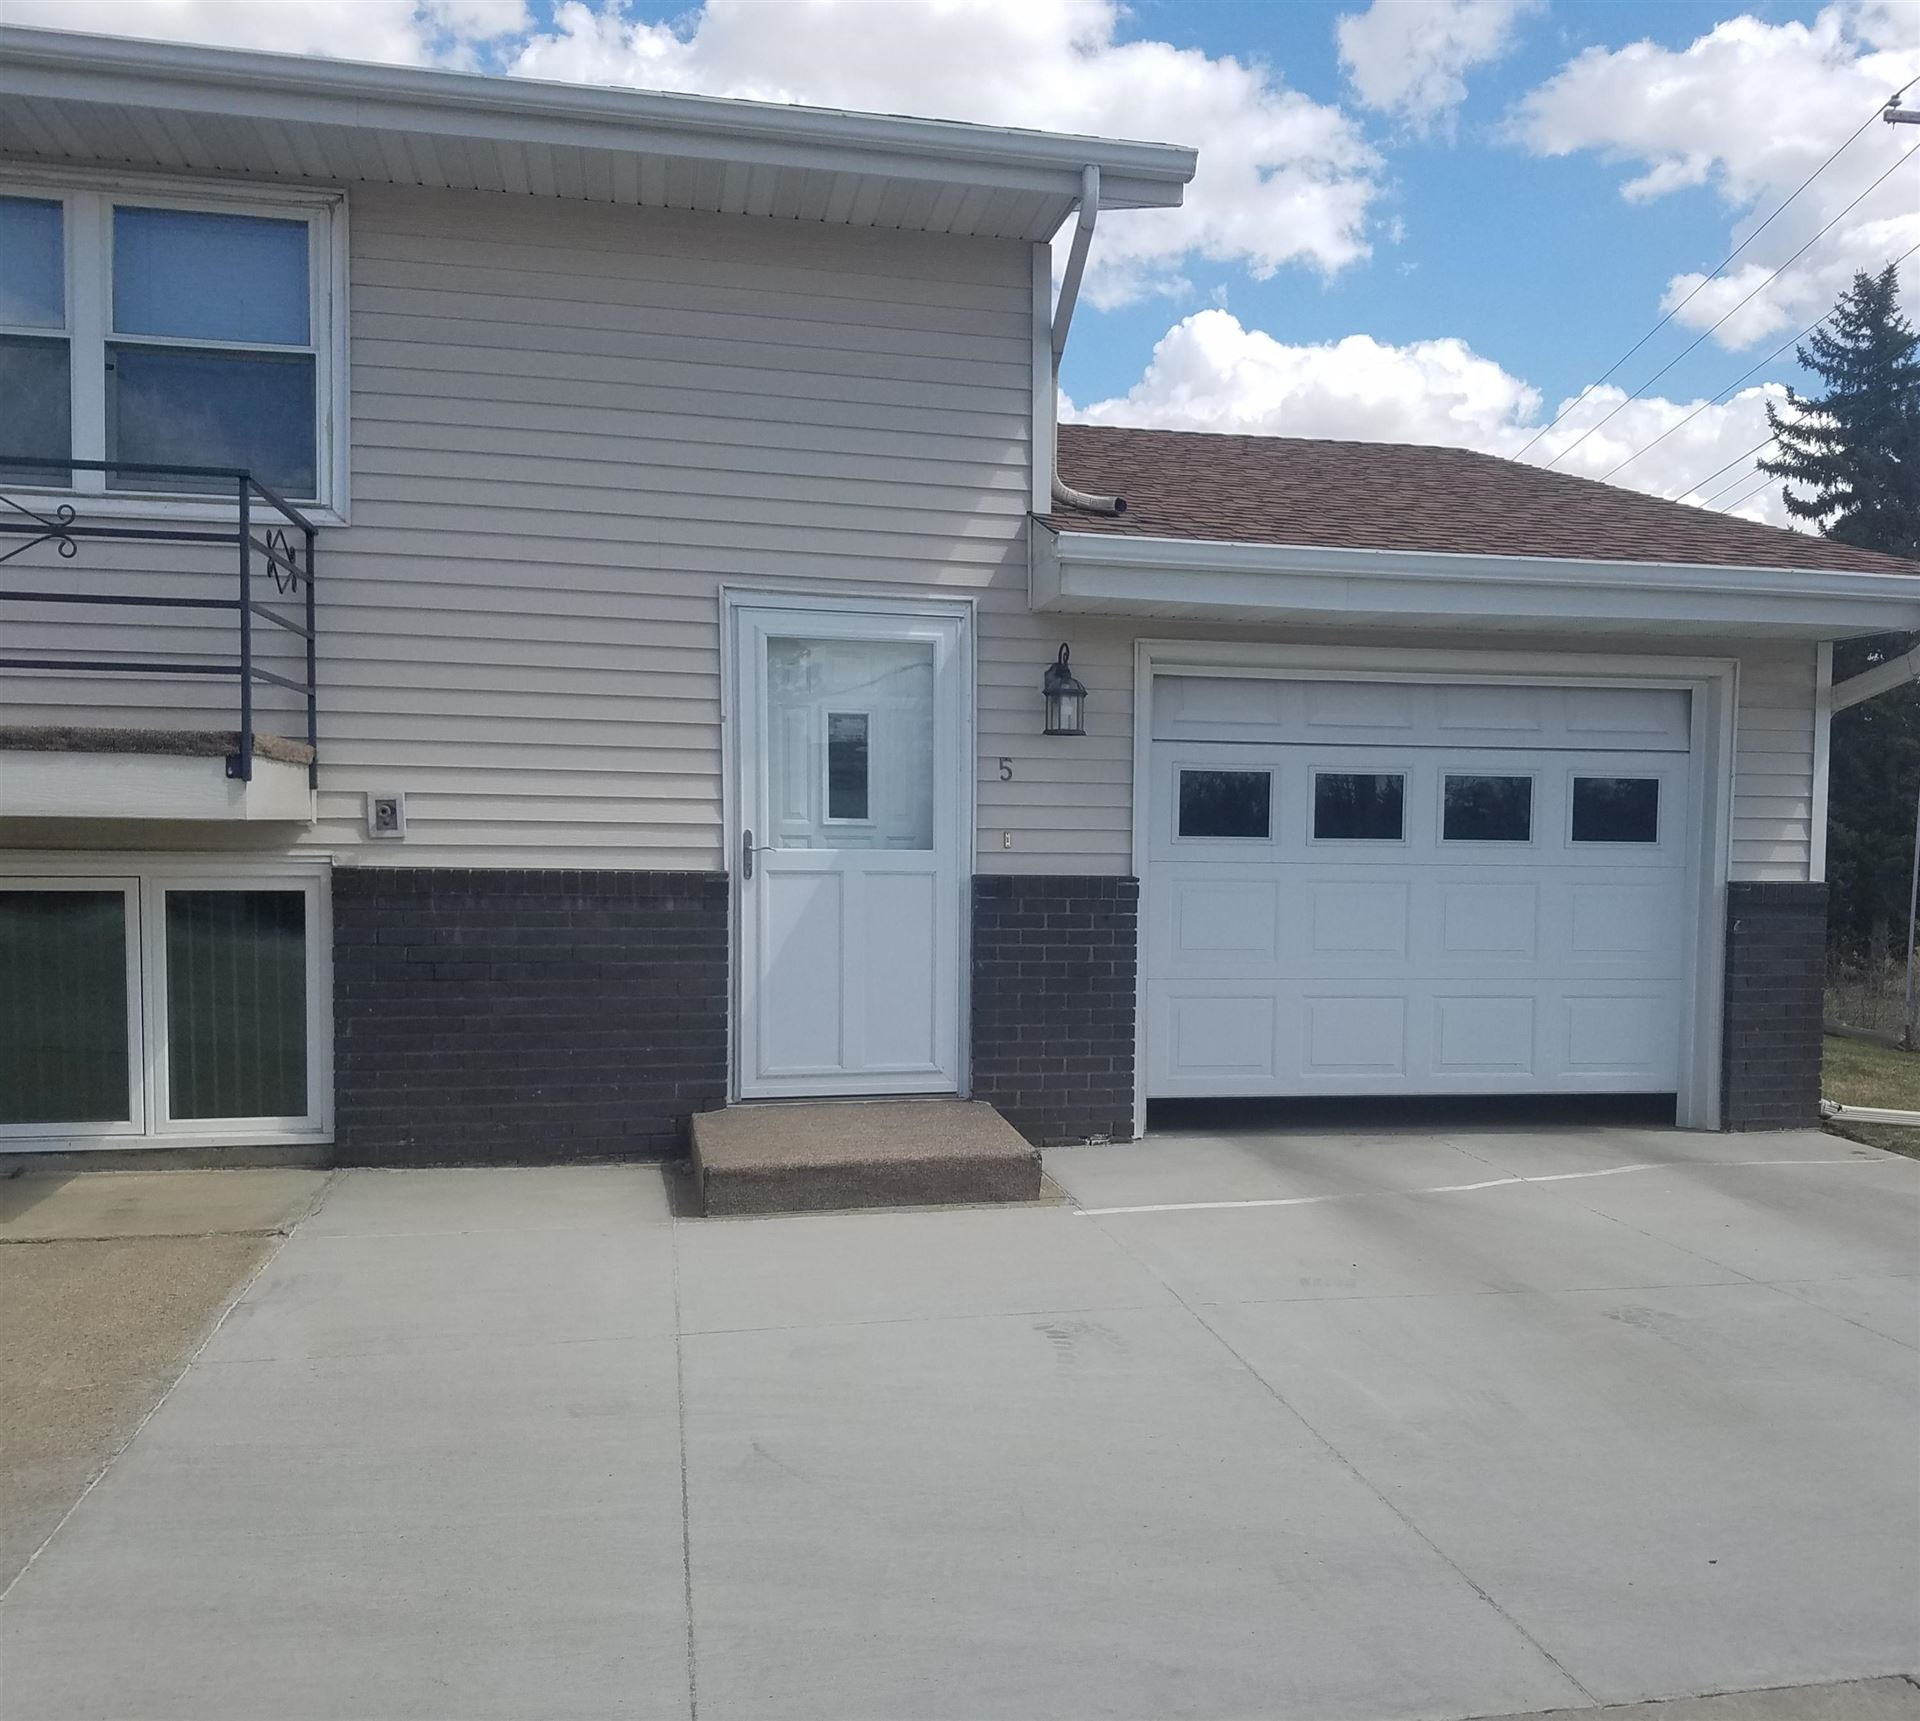 707 E Interstate Avenue #5, Bismarck, ND 58503 - #: 406484